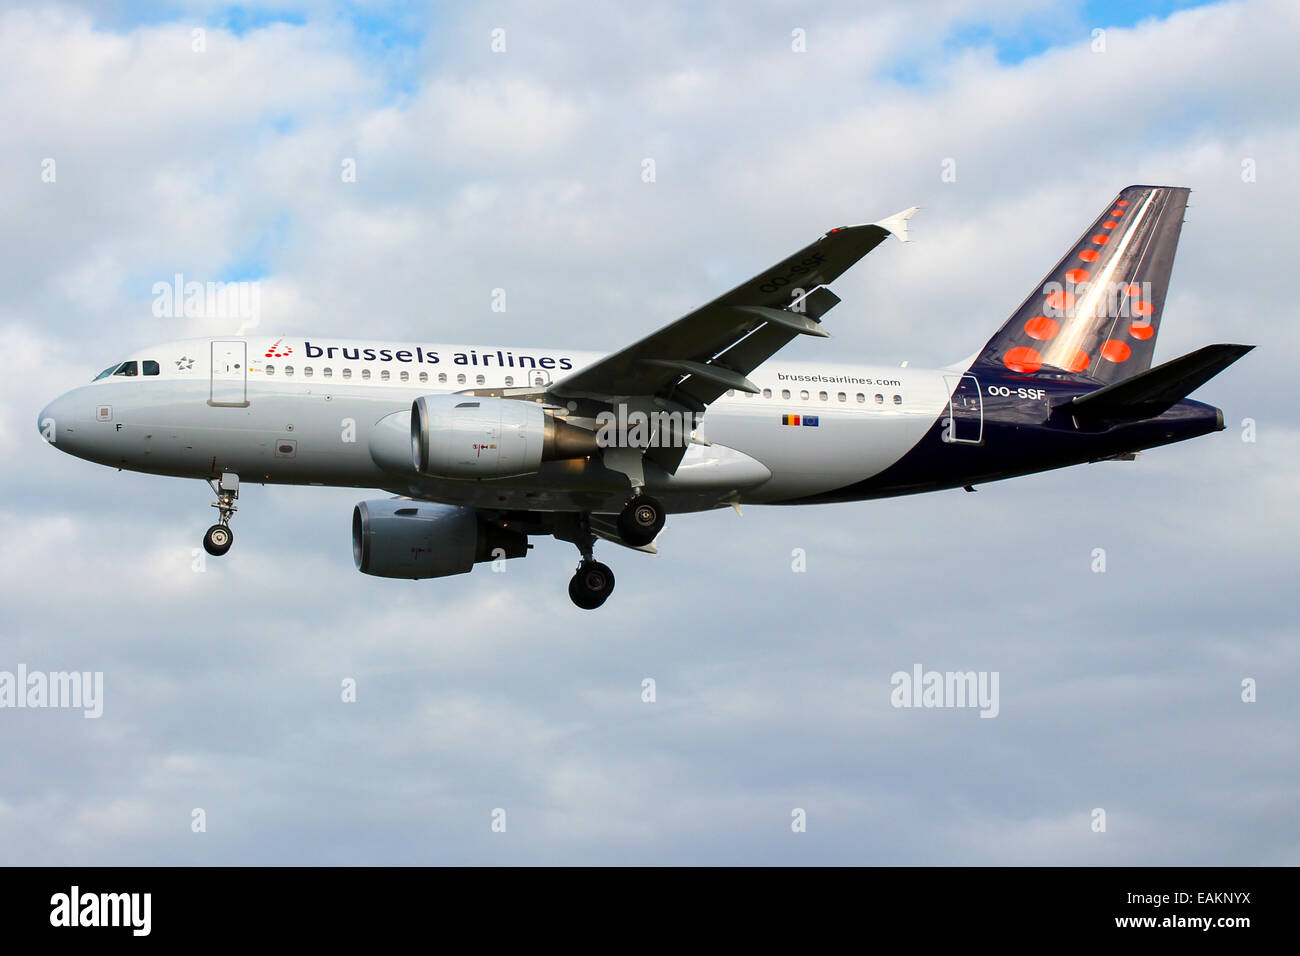 Brussels Airlines Airbus A319 approaches runway 27L at London Heathrow Airport. - Stock Image